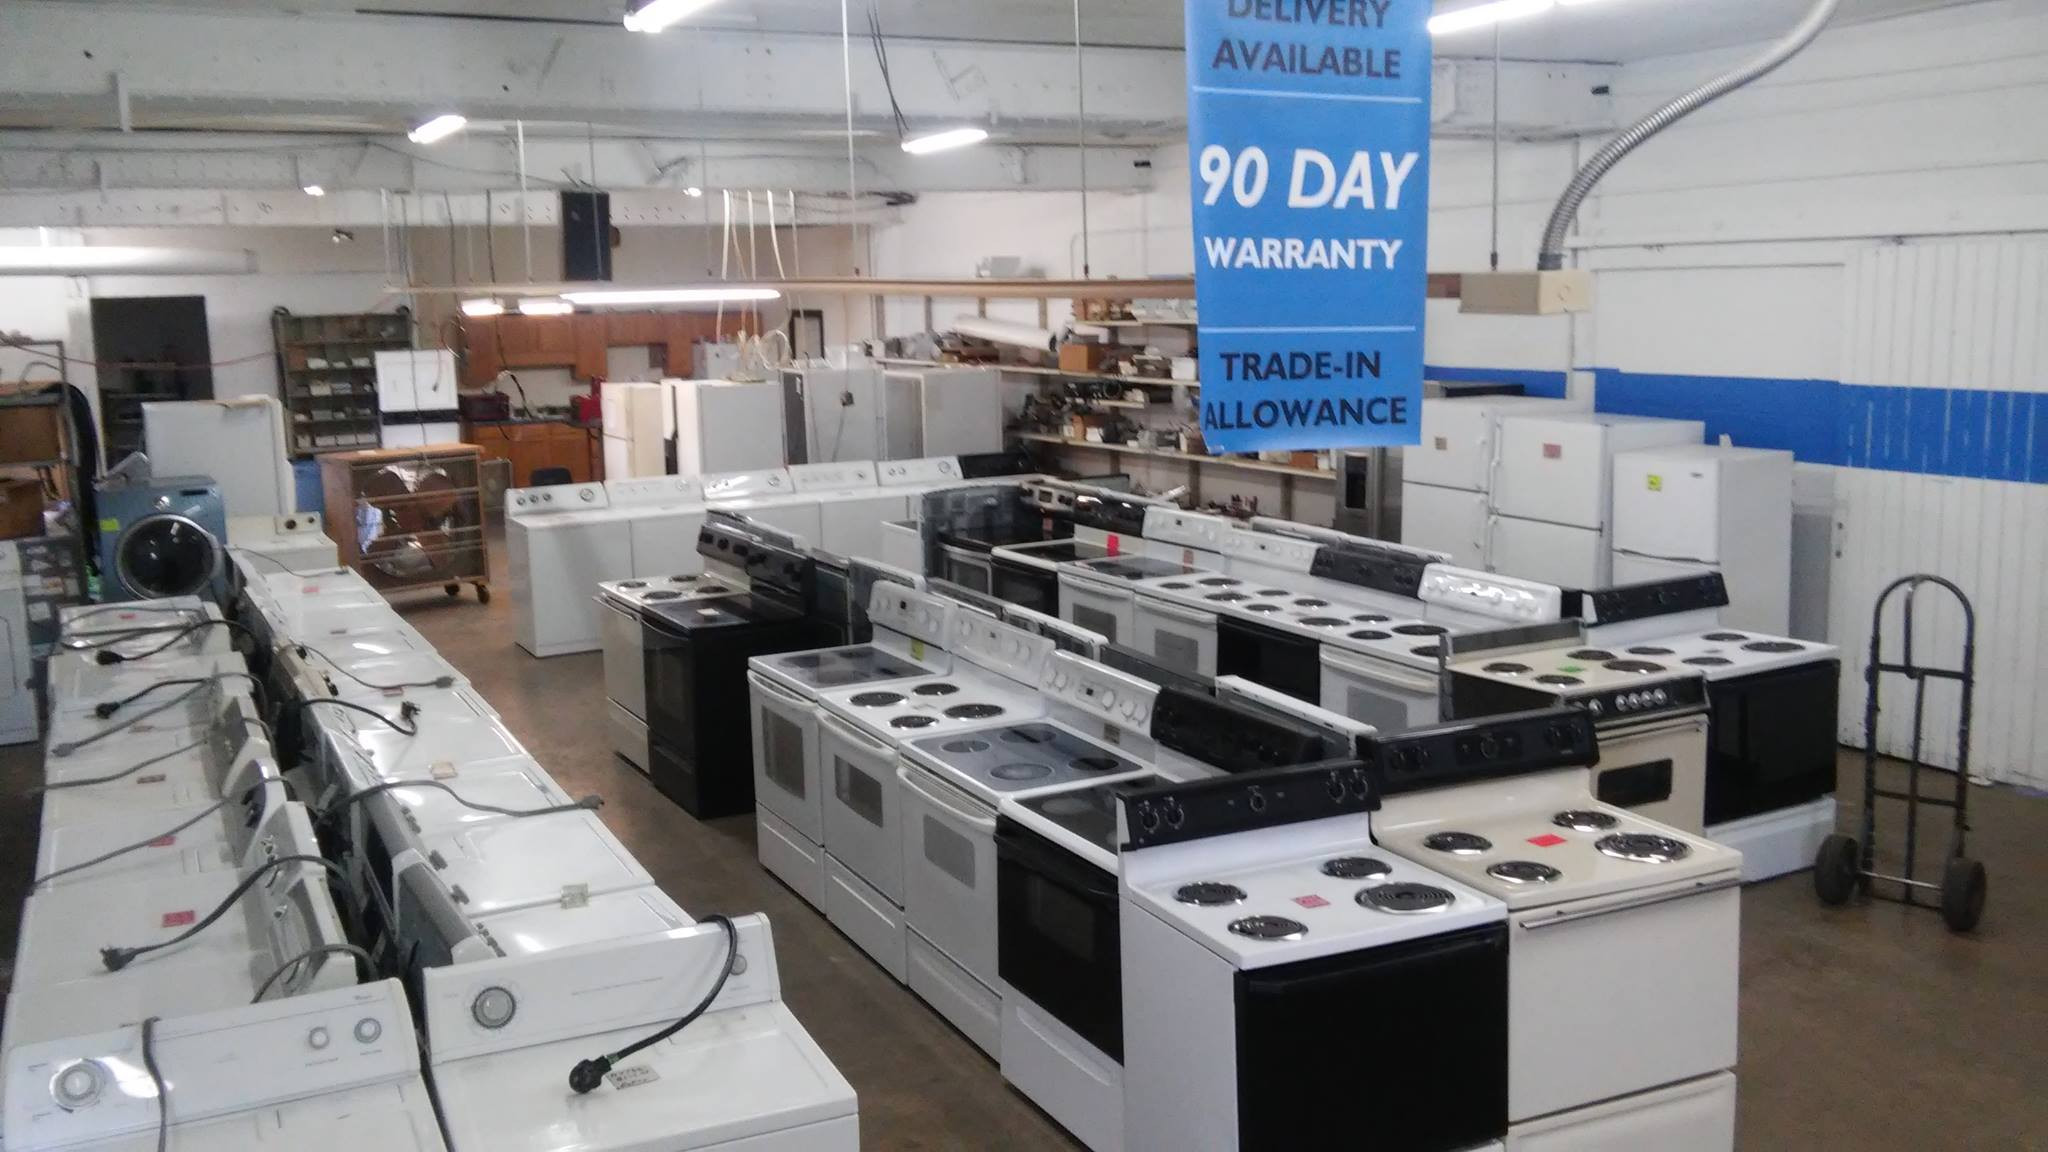 Quality Pre Owned Appliances Knoxville Tn